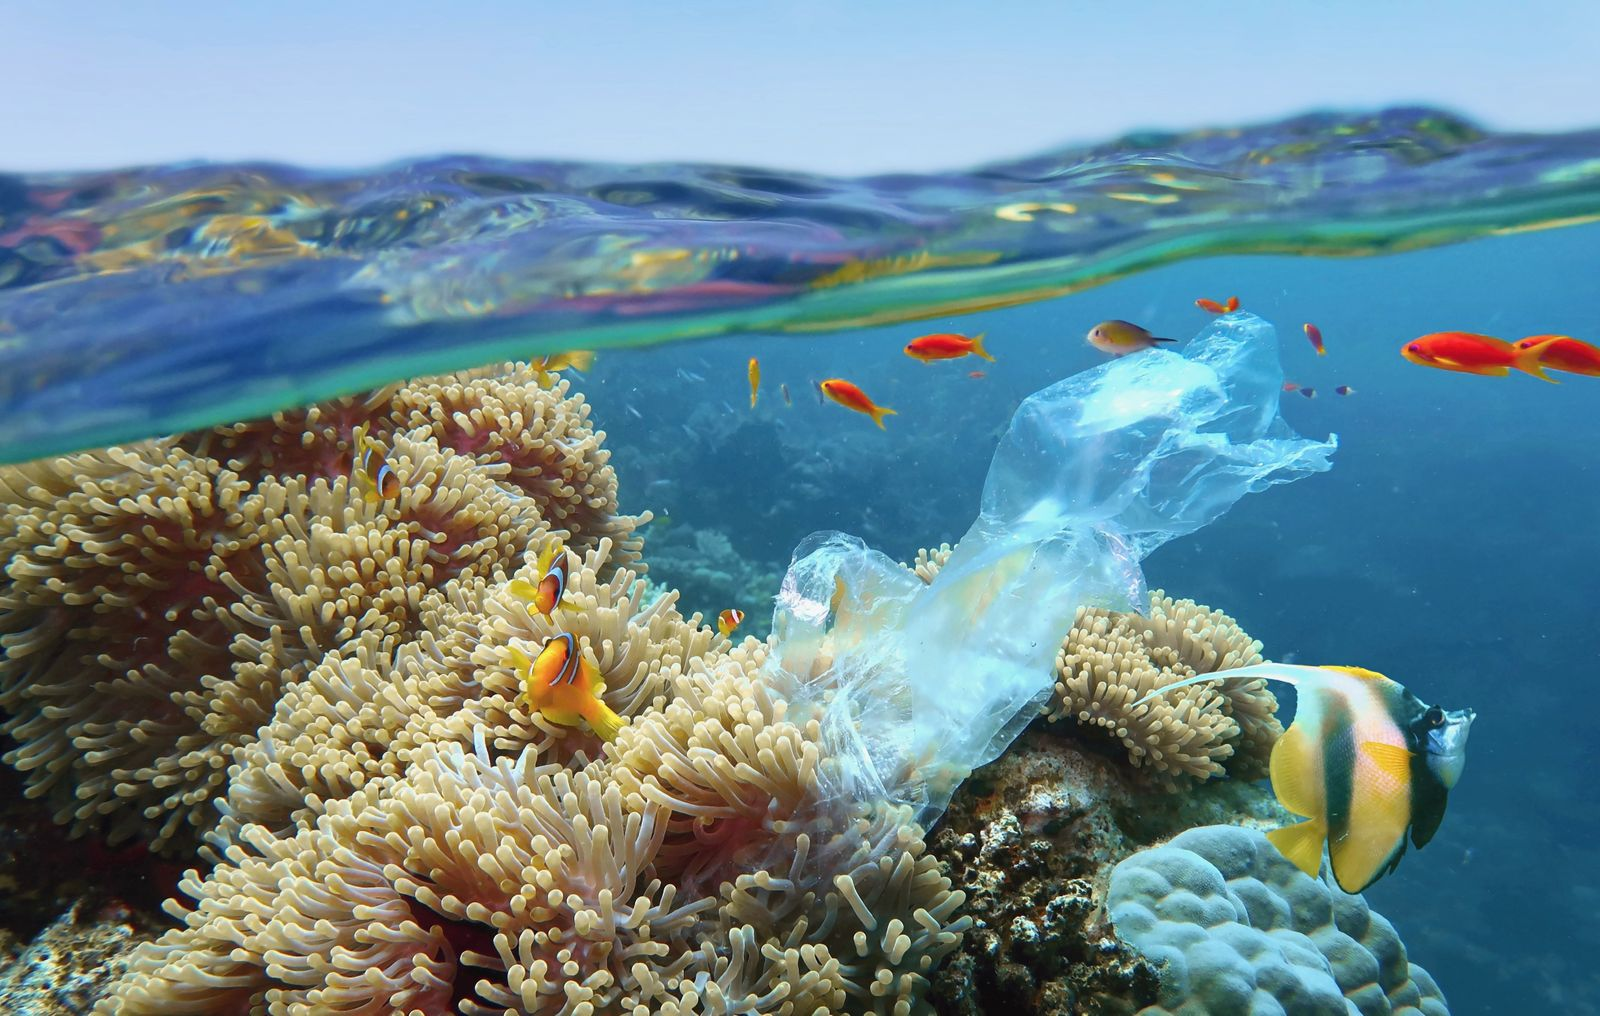 The world ocean pollution. Beautiful tropical coral reef with sea anemones, clownfish and colorful coral fish - polluted with plastic bag. The sea surface view.